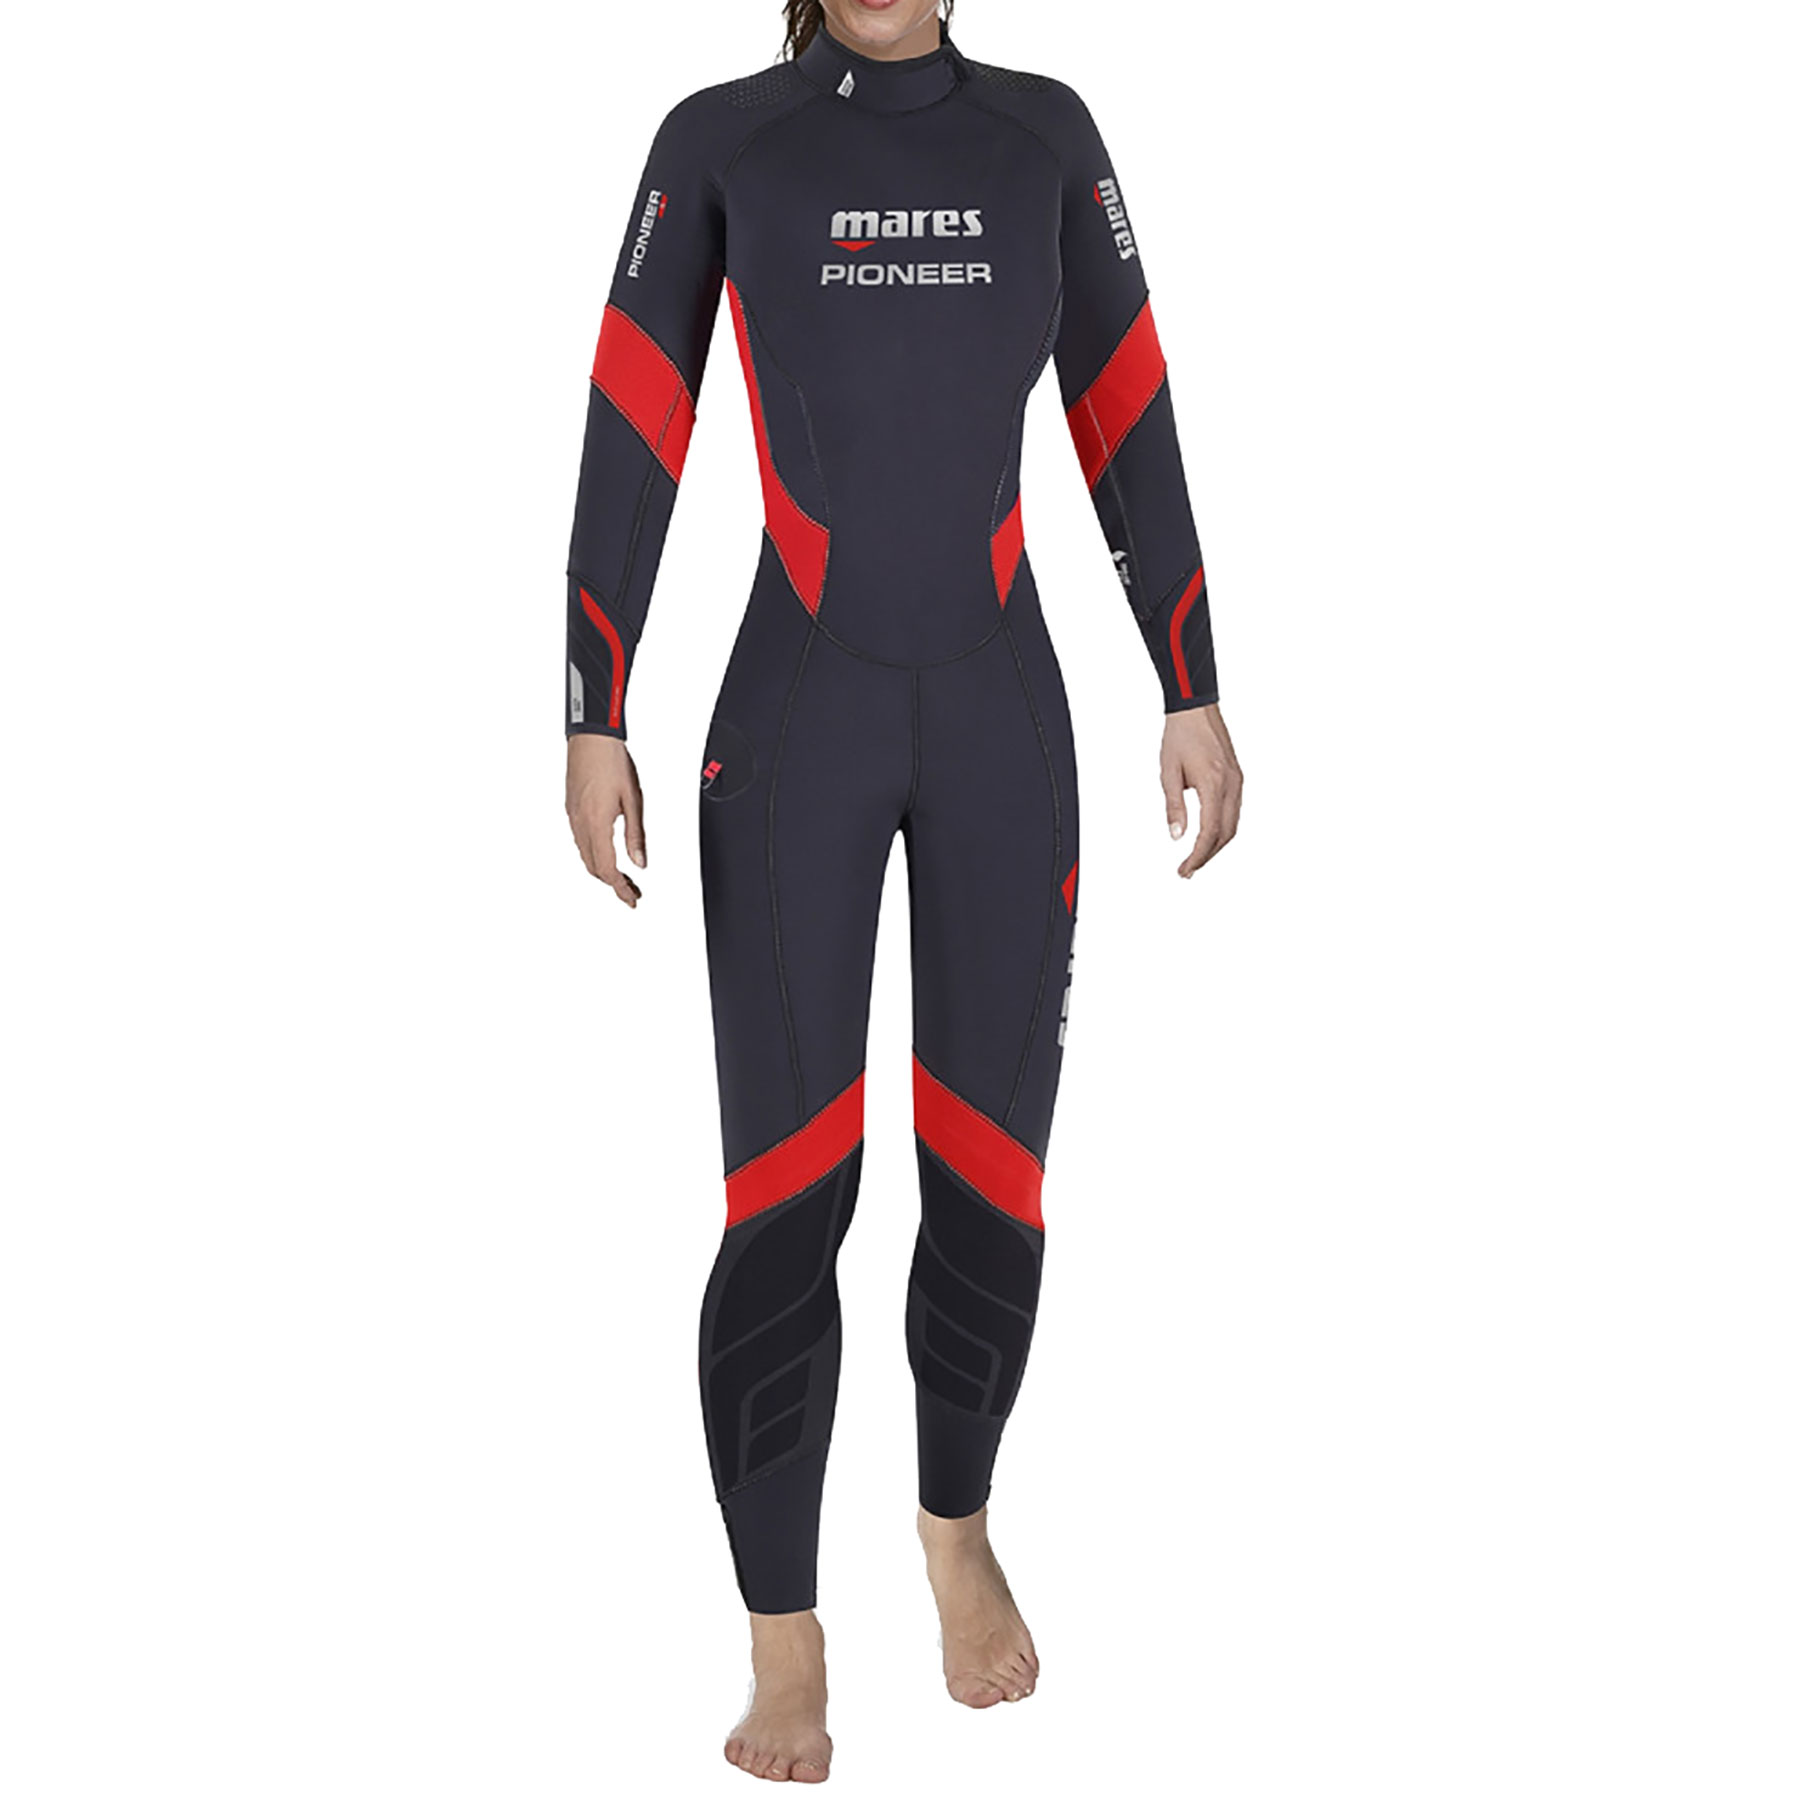 MUTA UMIDA pioneer 5mm she dives DONNA